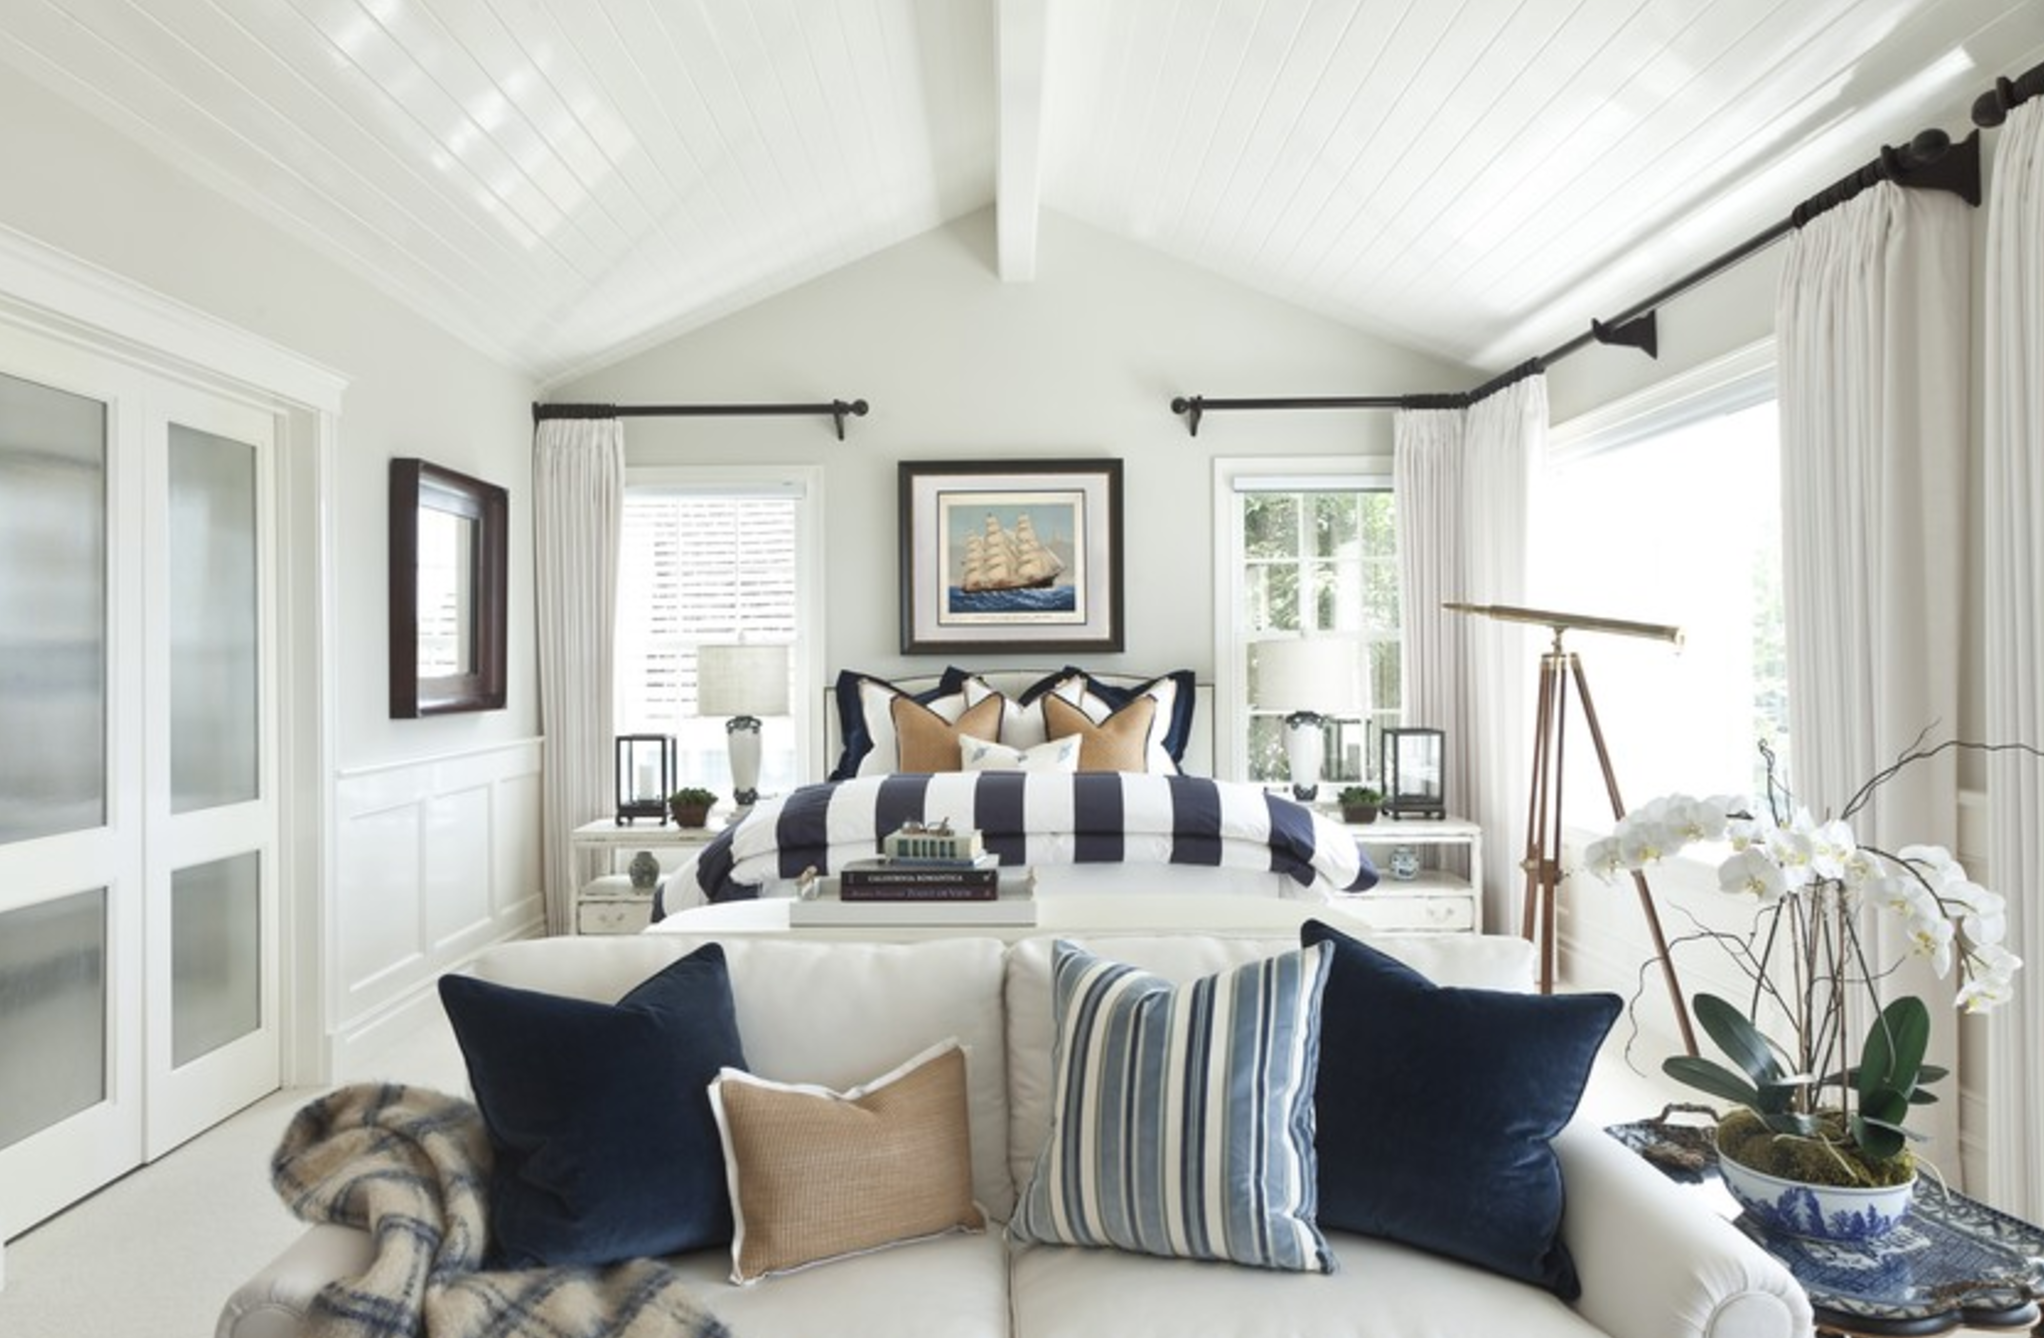 Steal this Style: 6 Inspiring Bedroom Design Ideas - The Design Network